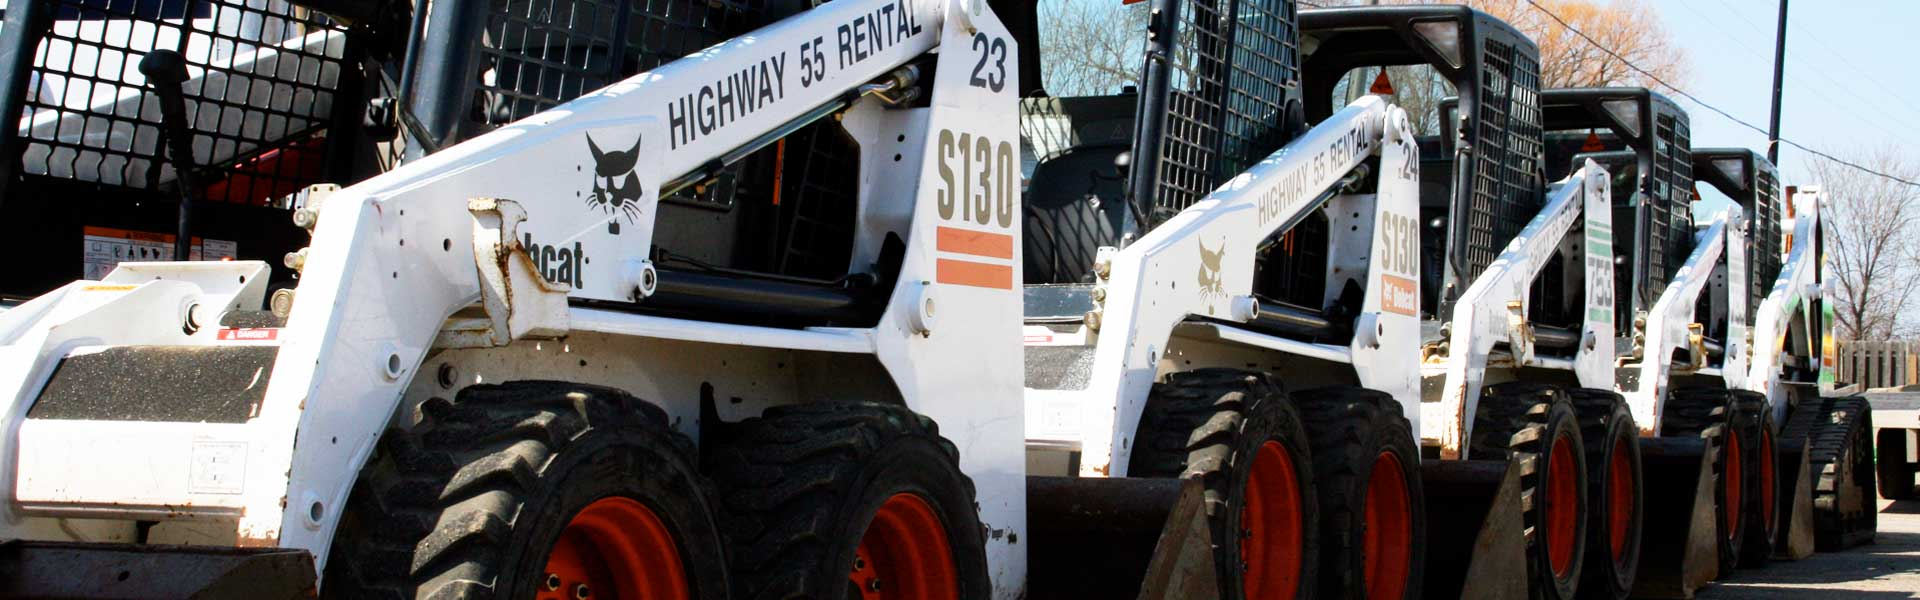 Equipment Rentals in Plymouth MN | Tool Rentals Minneapolis